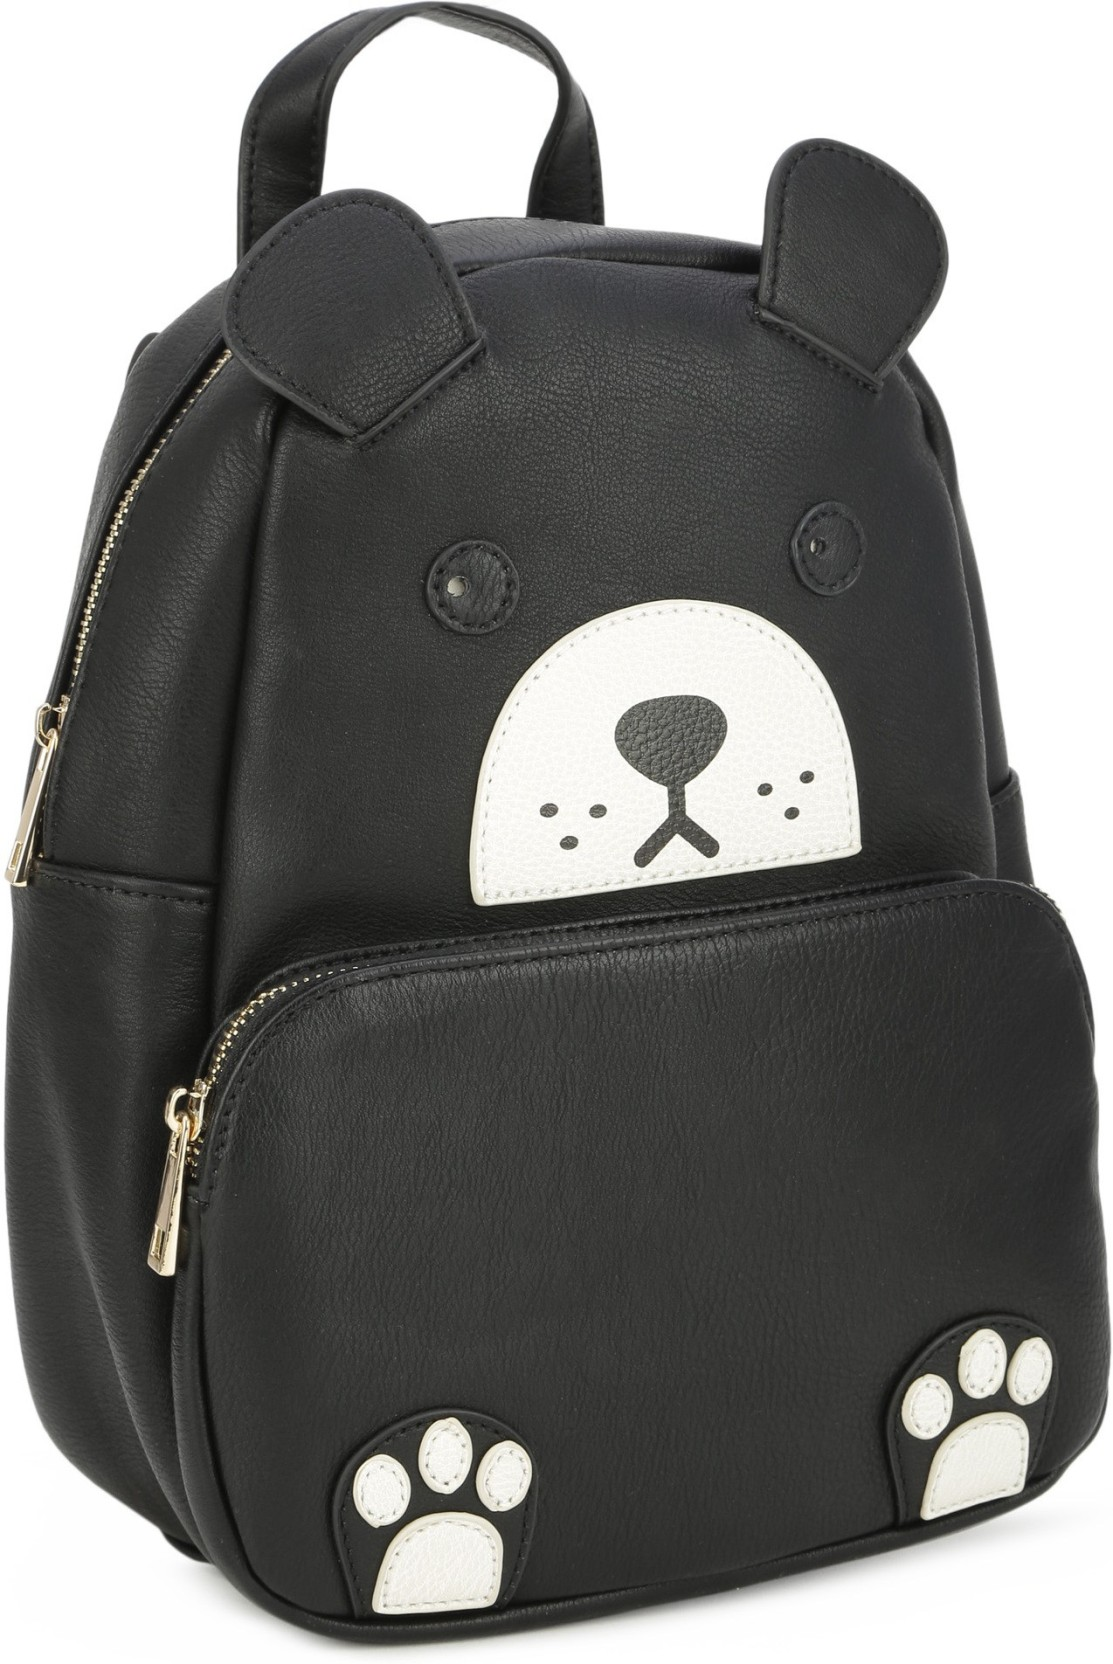 3dd8918b8679 Black Backpack Purse Forever 21- Fenix Toulouse Handball